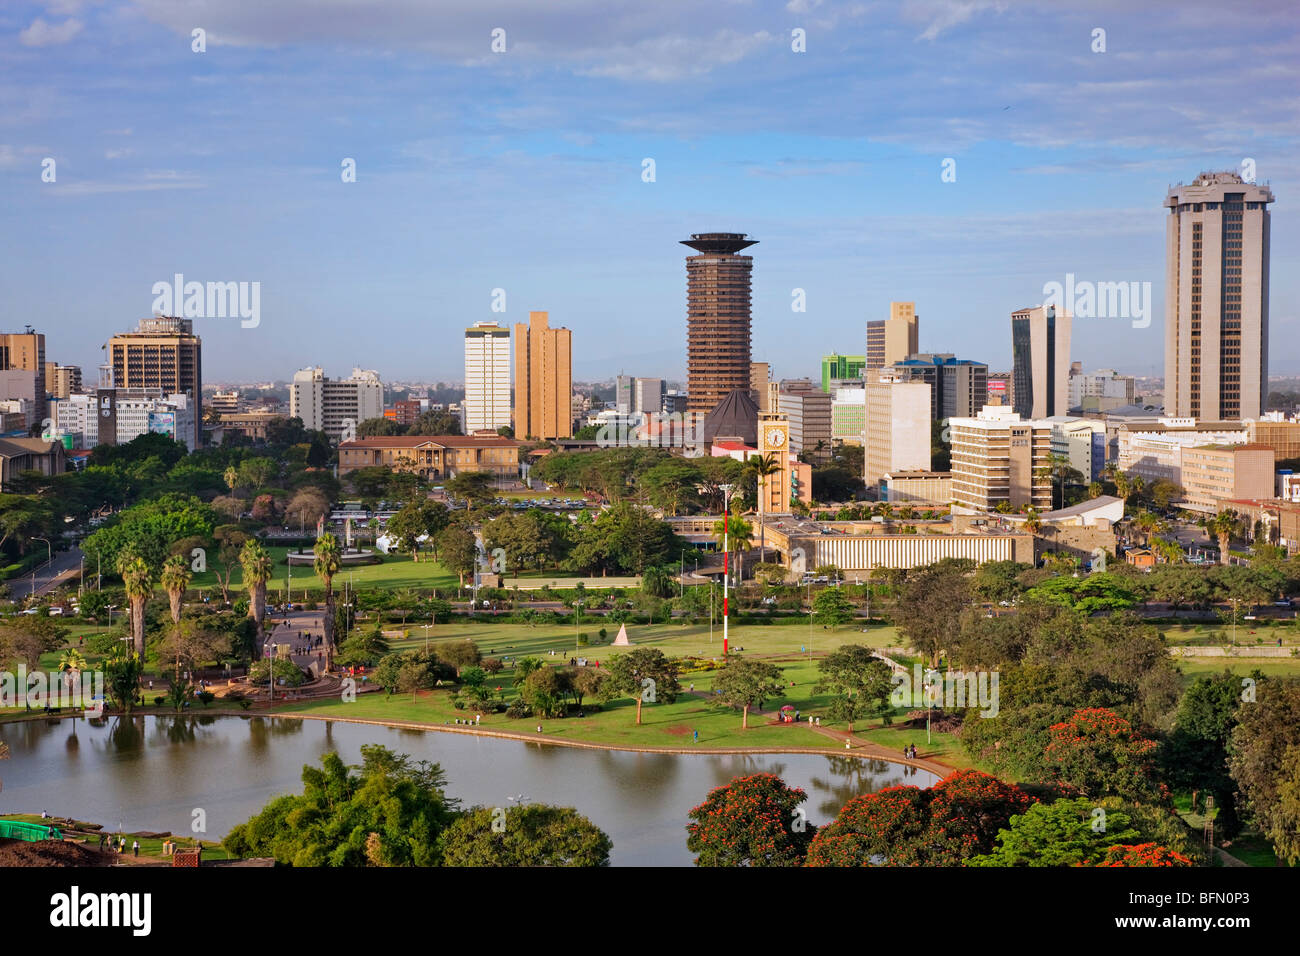 Kenya, Nairobi. Nairobi in late afternoon sunlight with Uhuru Park in the foreground. - Stock Image